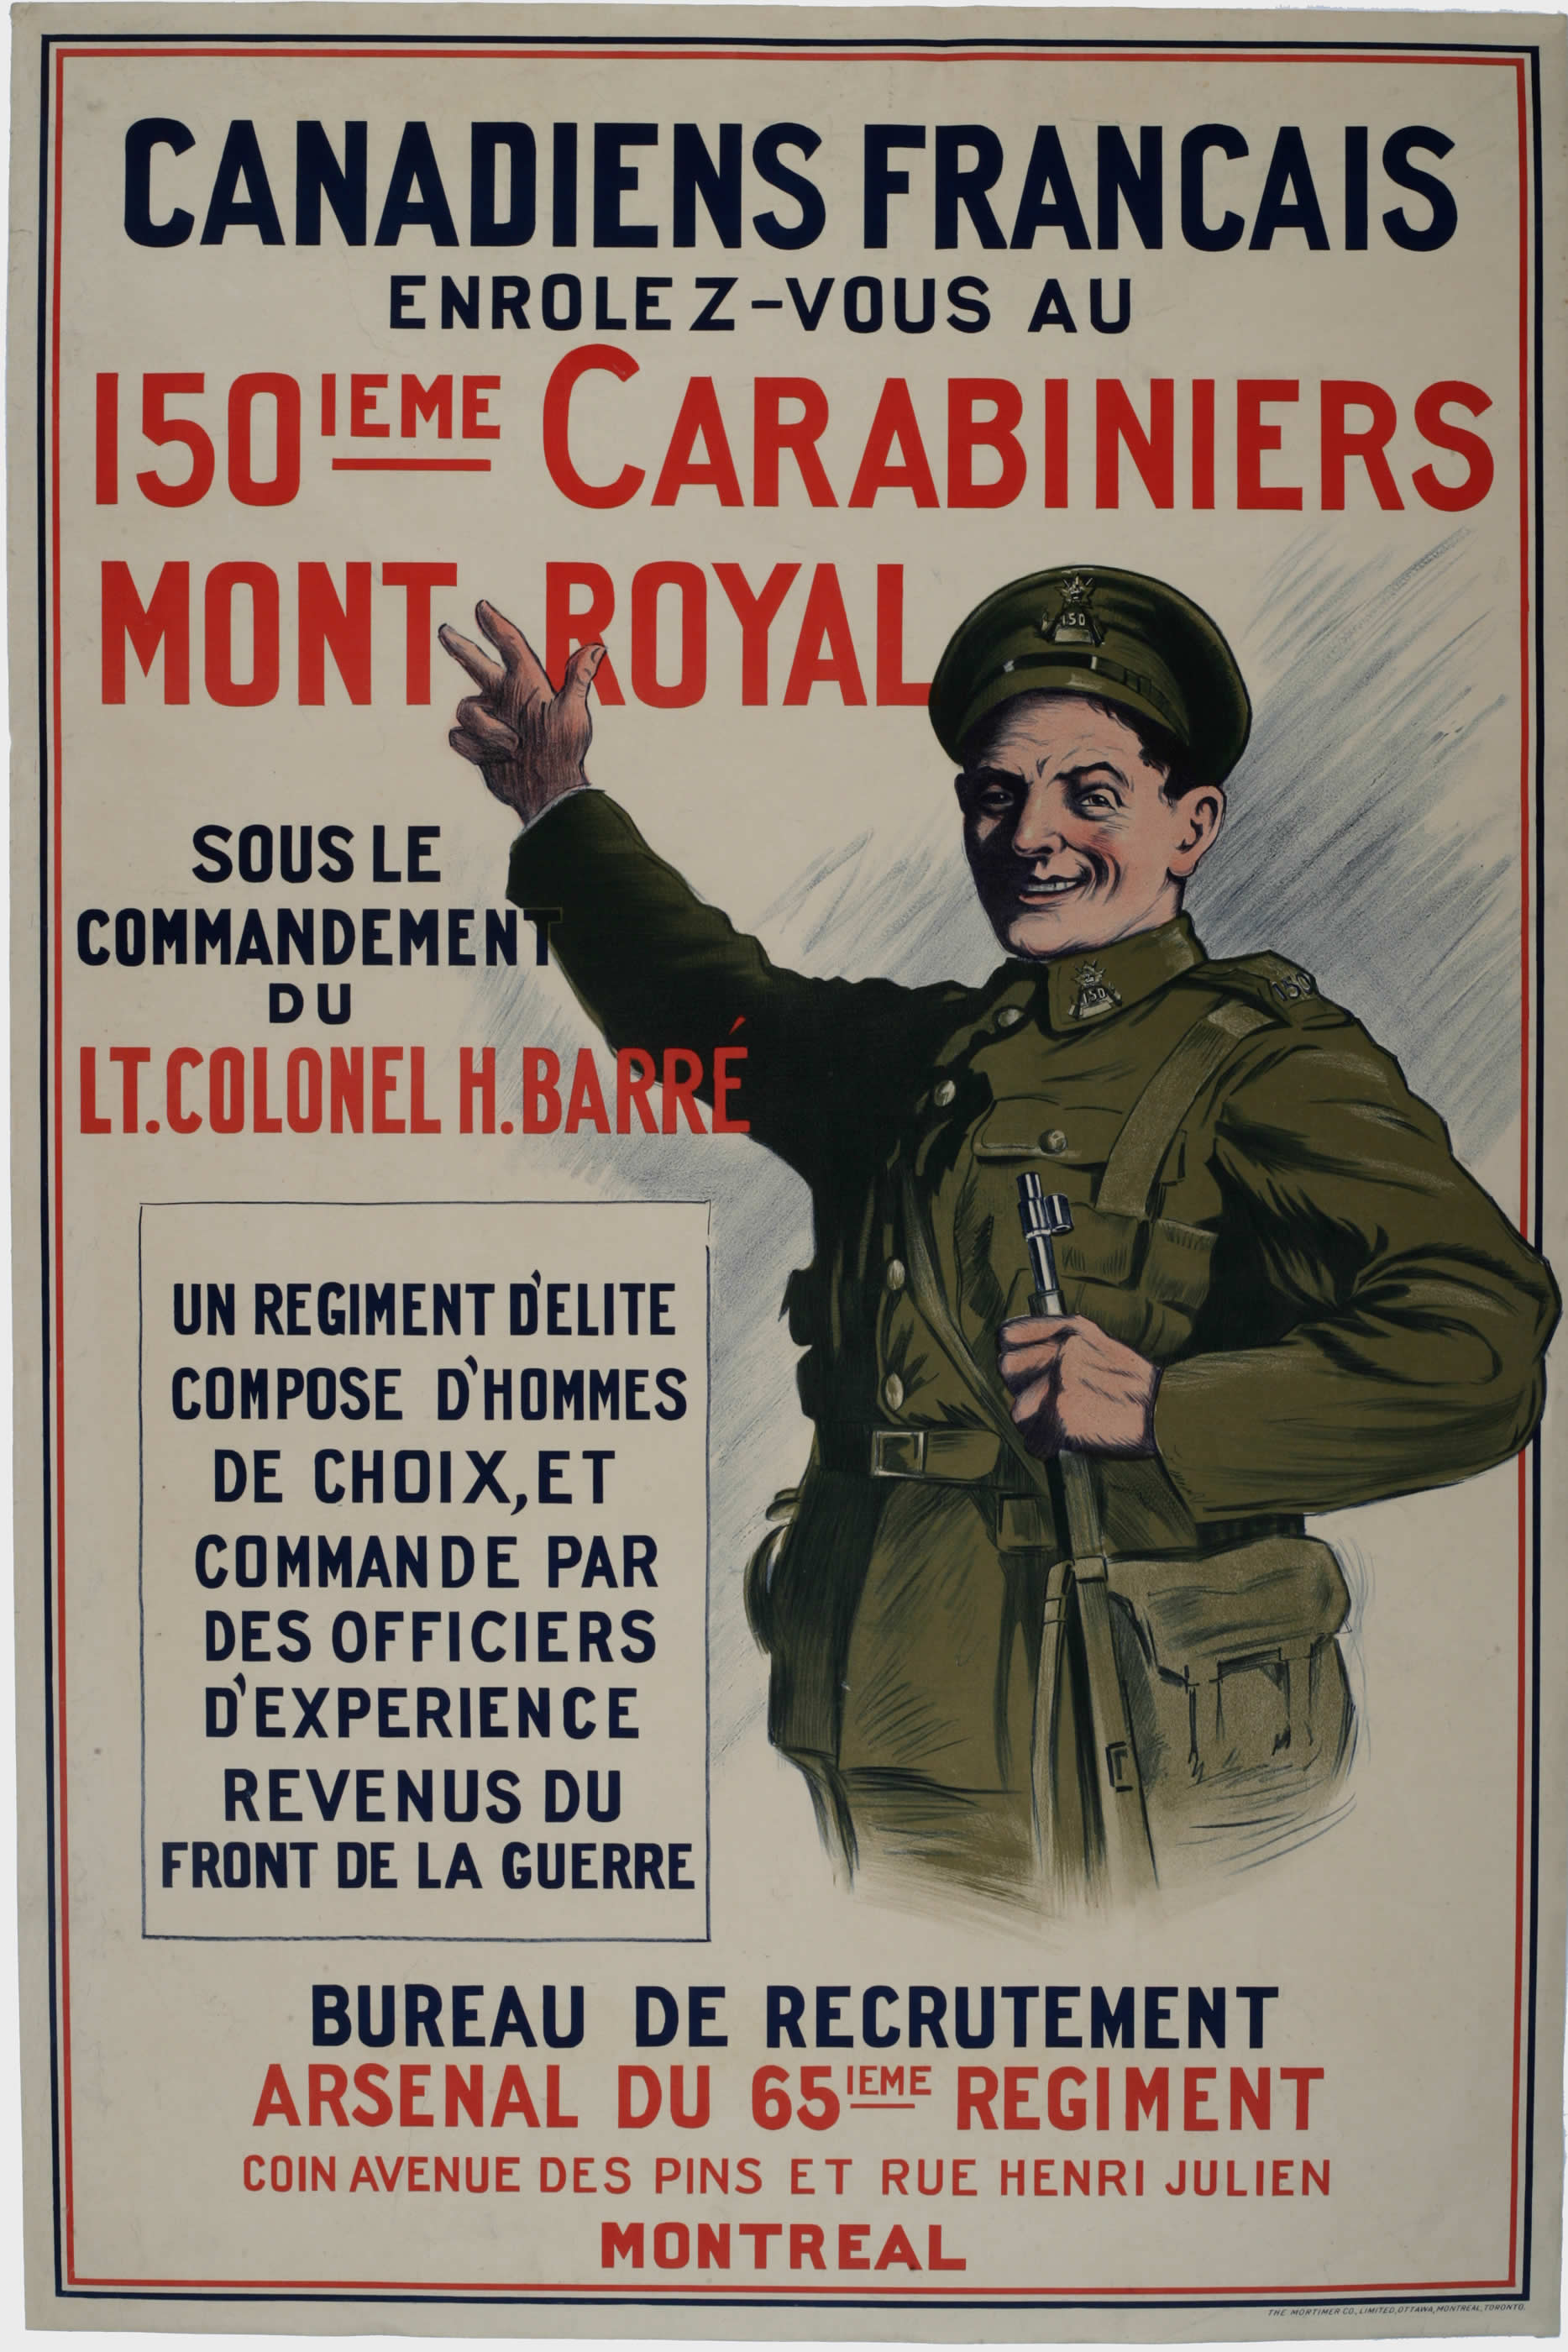 <i>150ième Carabiniers</i> (150th Battalion)